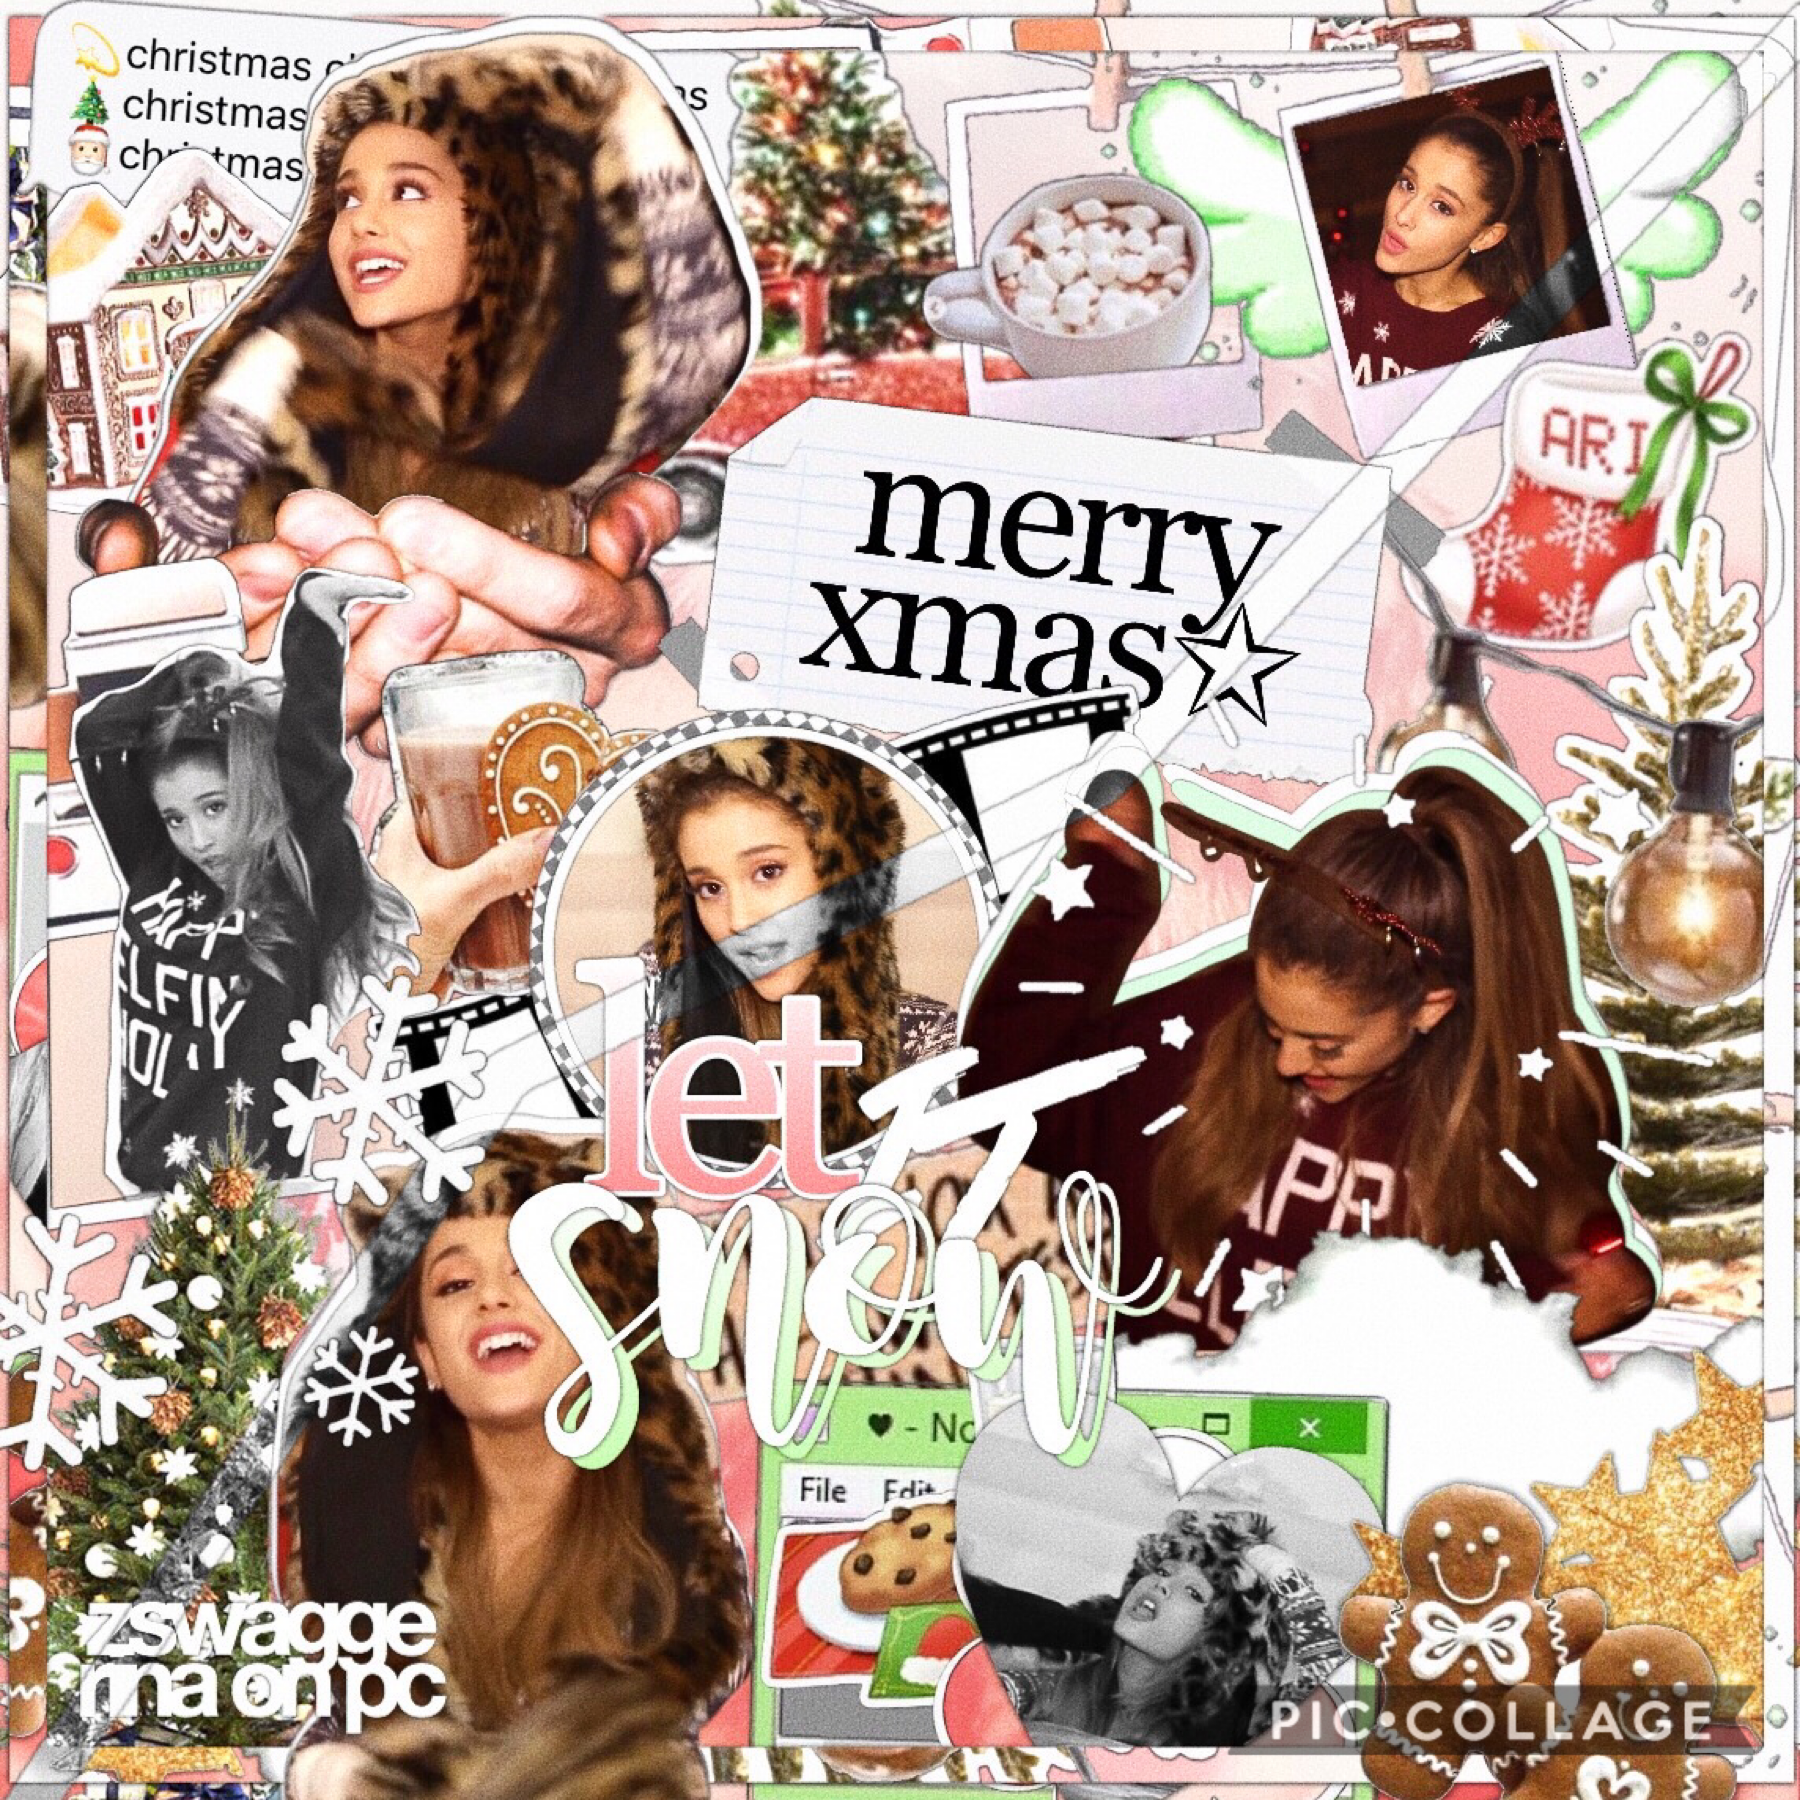 merry Christmas !! 🥰 love you so much, my best wishes to all of you 🍪🤍 !!!! lil edit for you 🎄